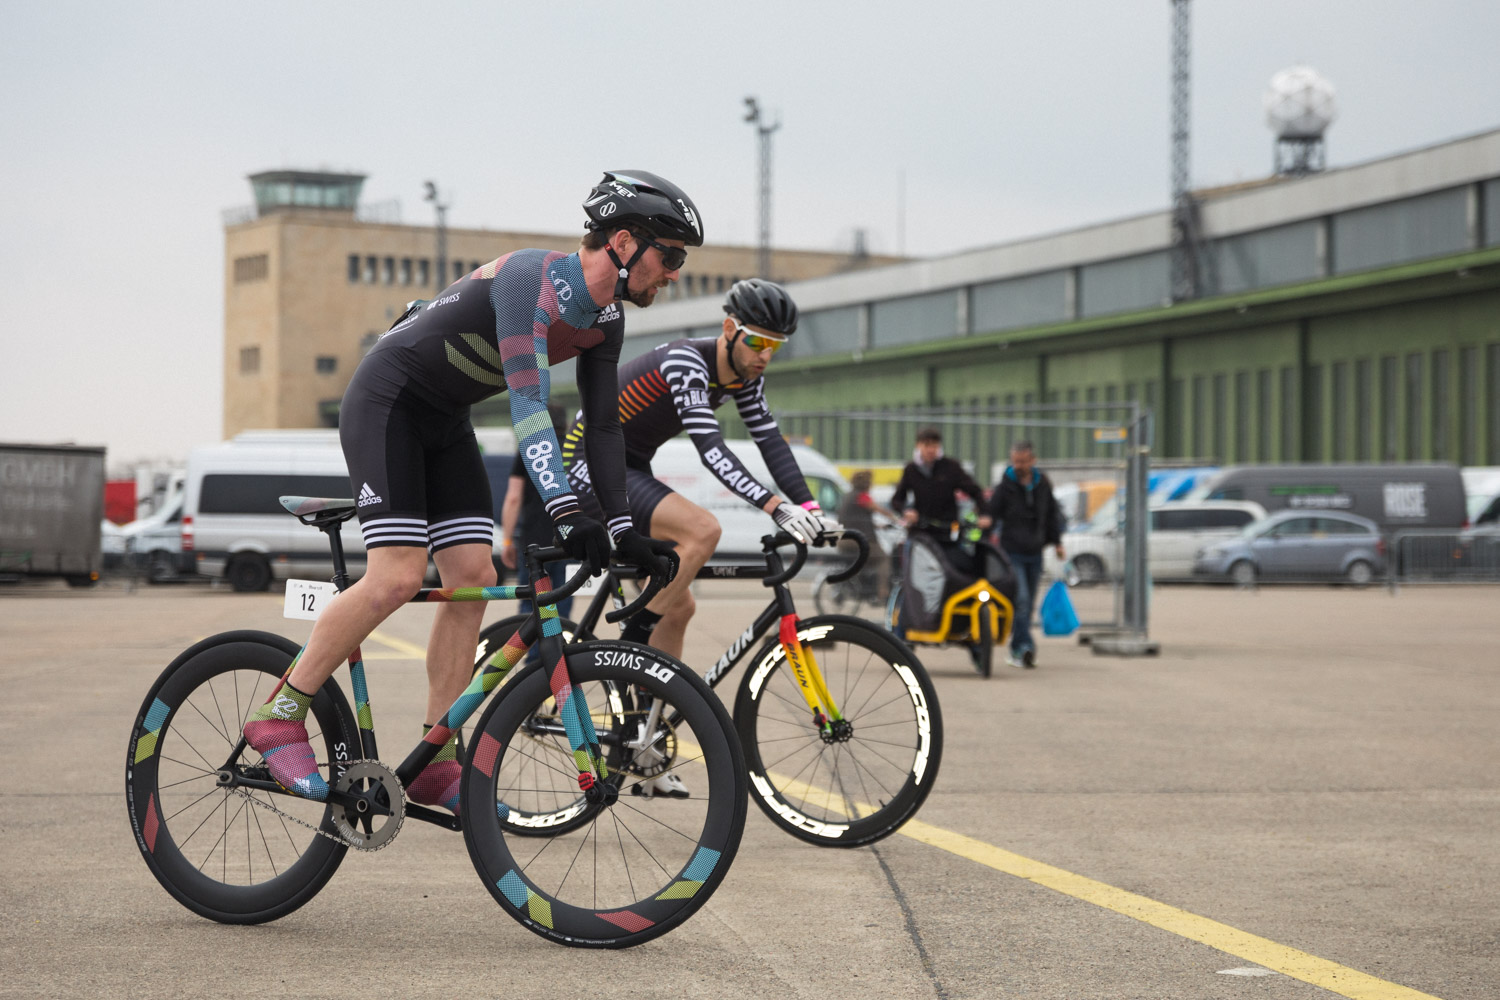 8brcrit 8bar team fixed gear crit 8 - Fast, Faster, 8bar crit 2018 - the race review!